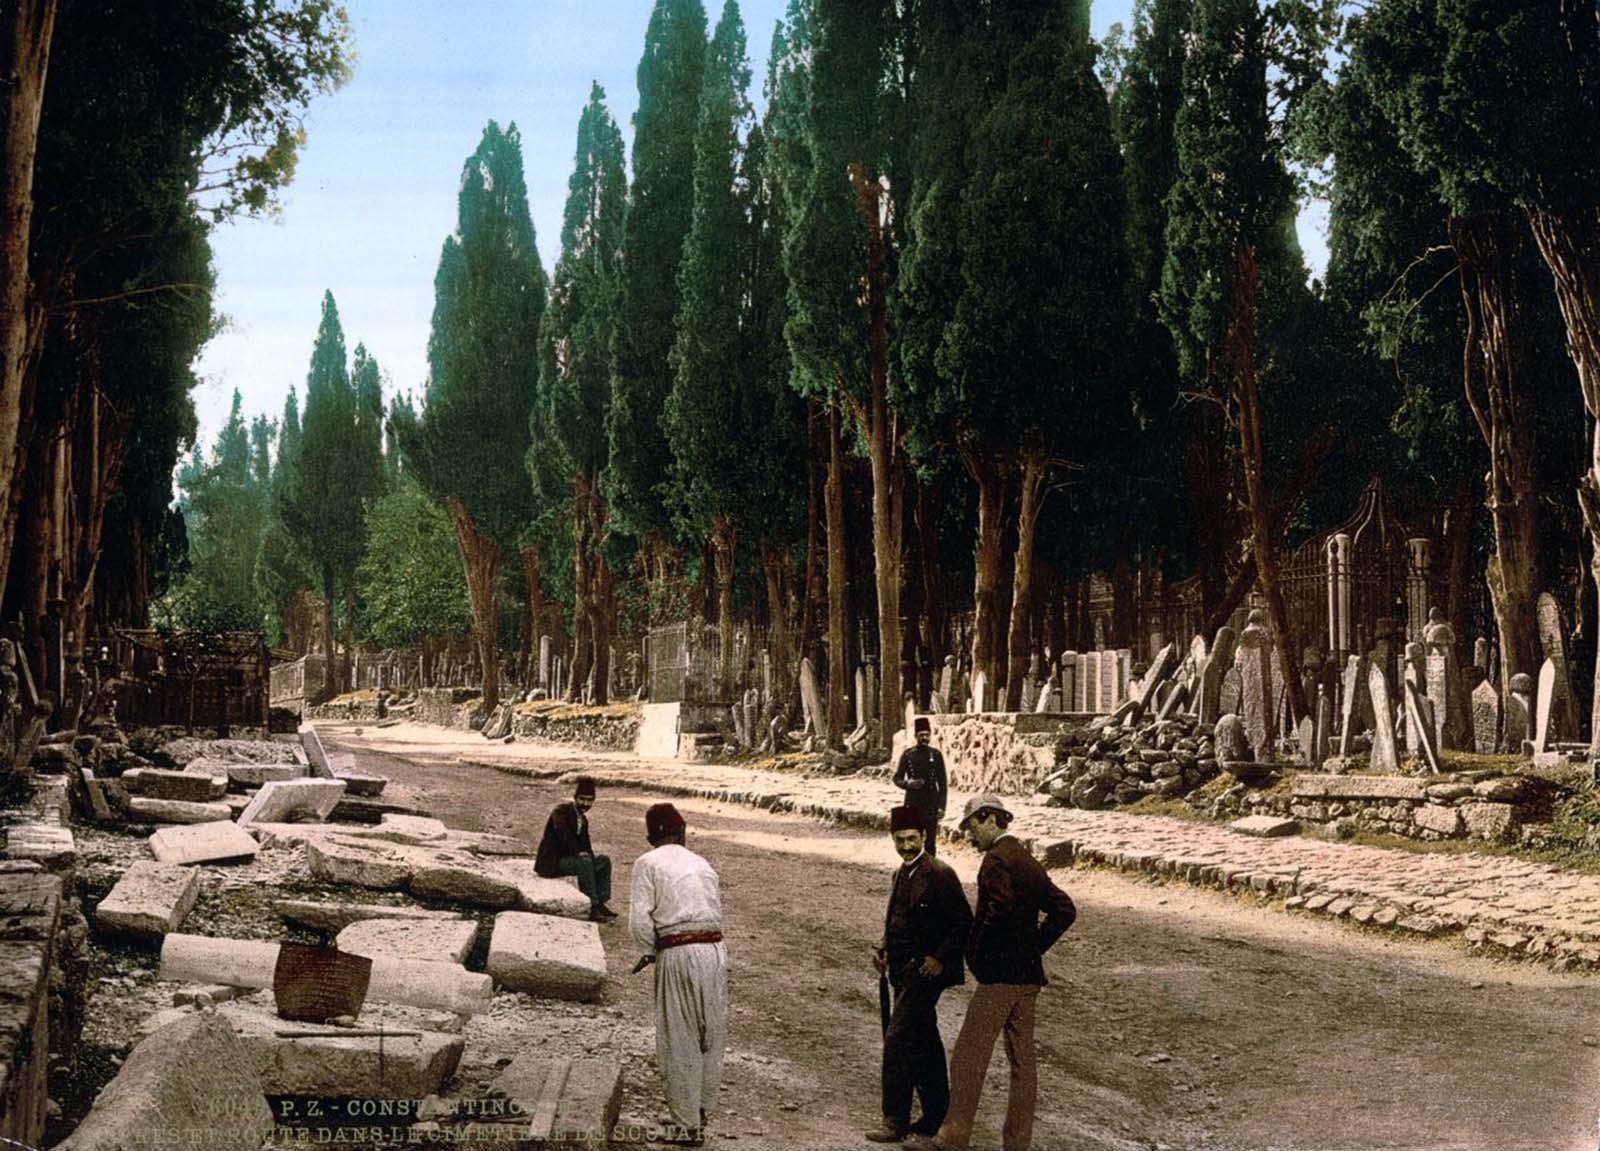 Cypresses along the road to the cemetery.